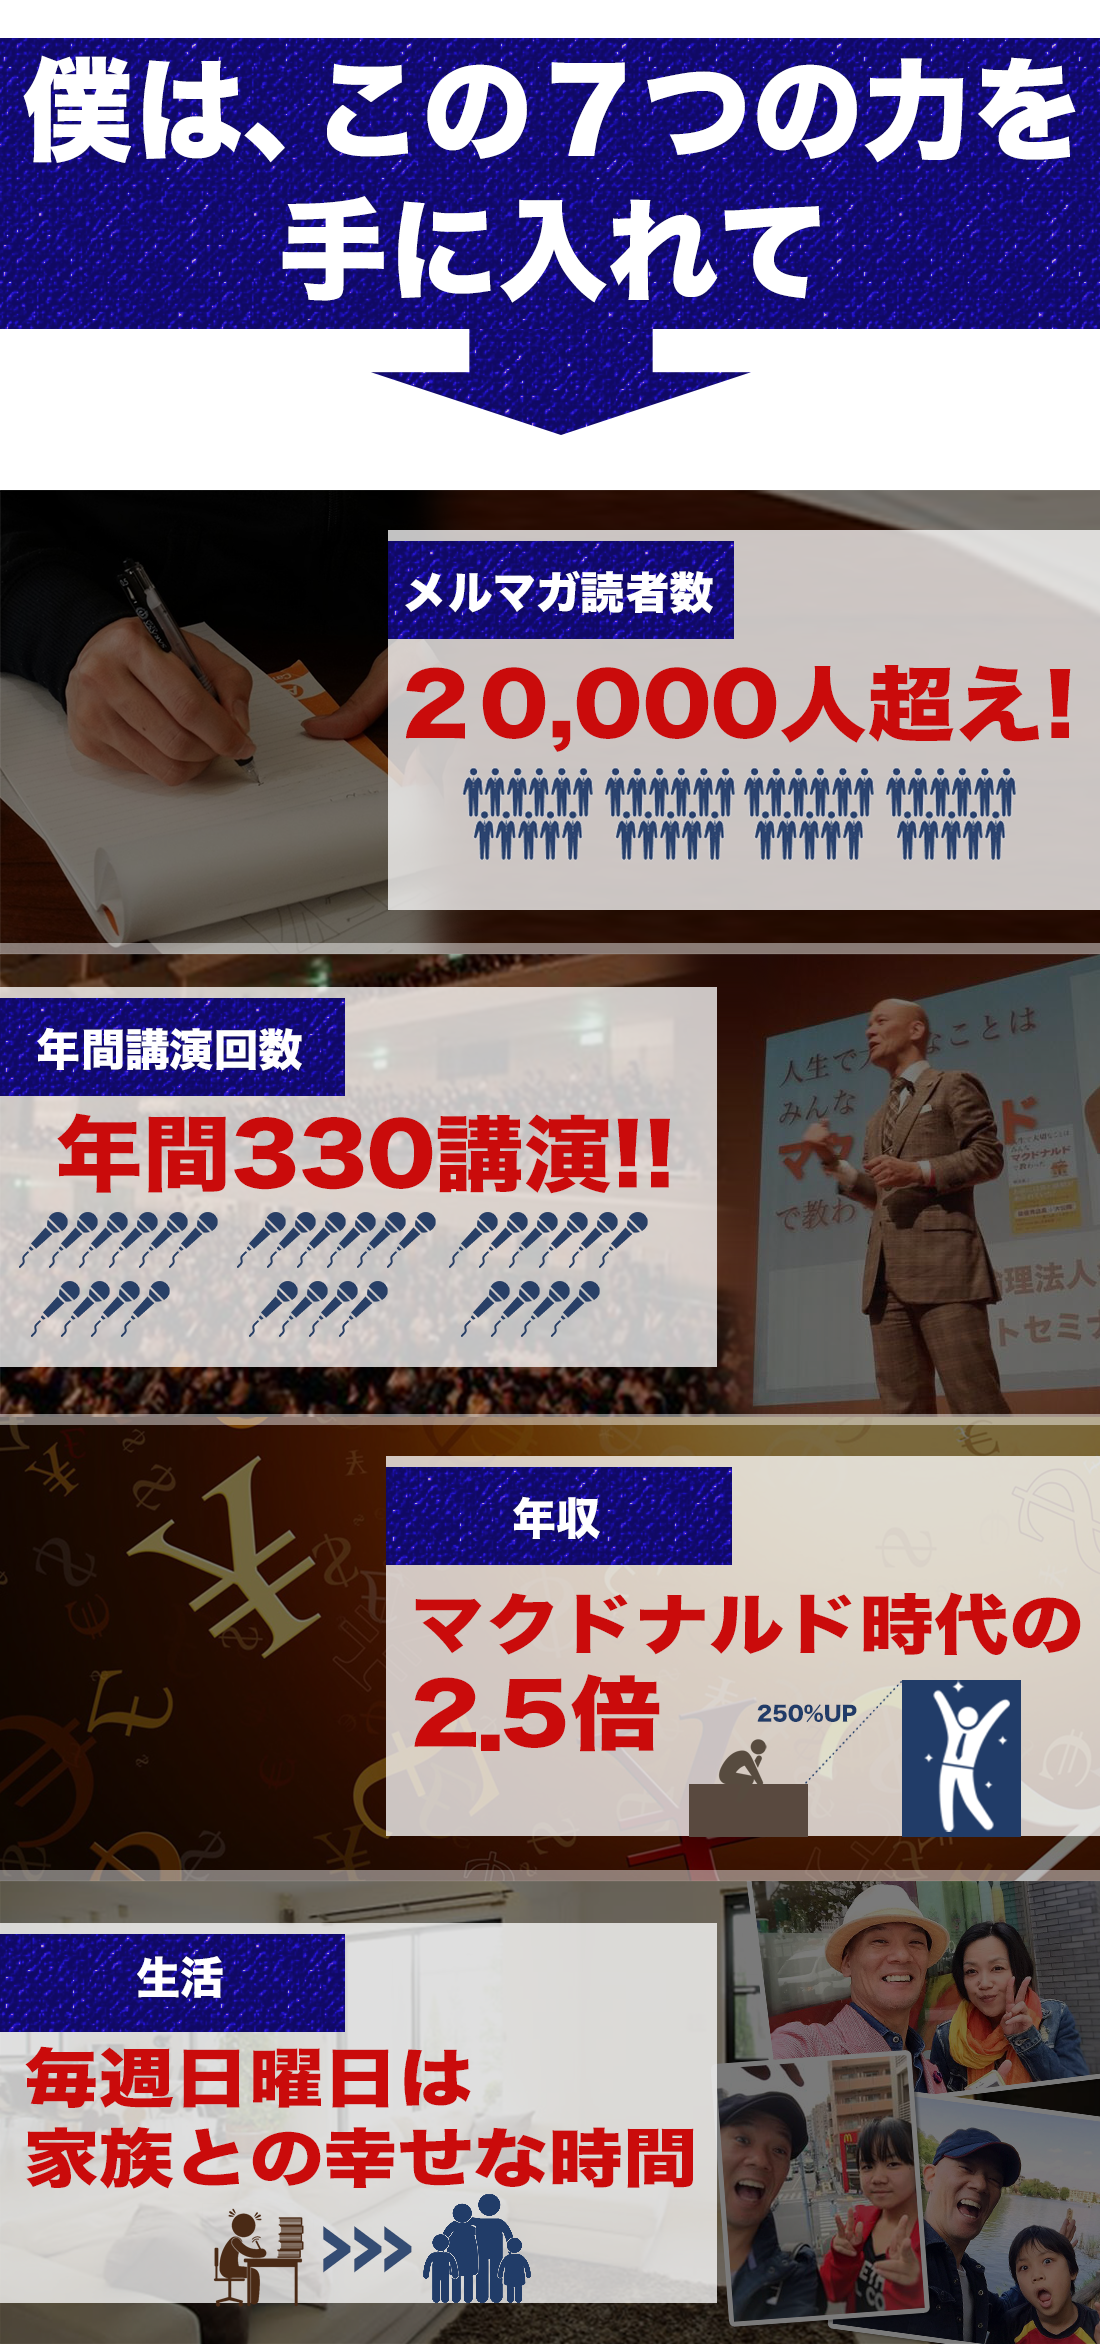 business09−2